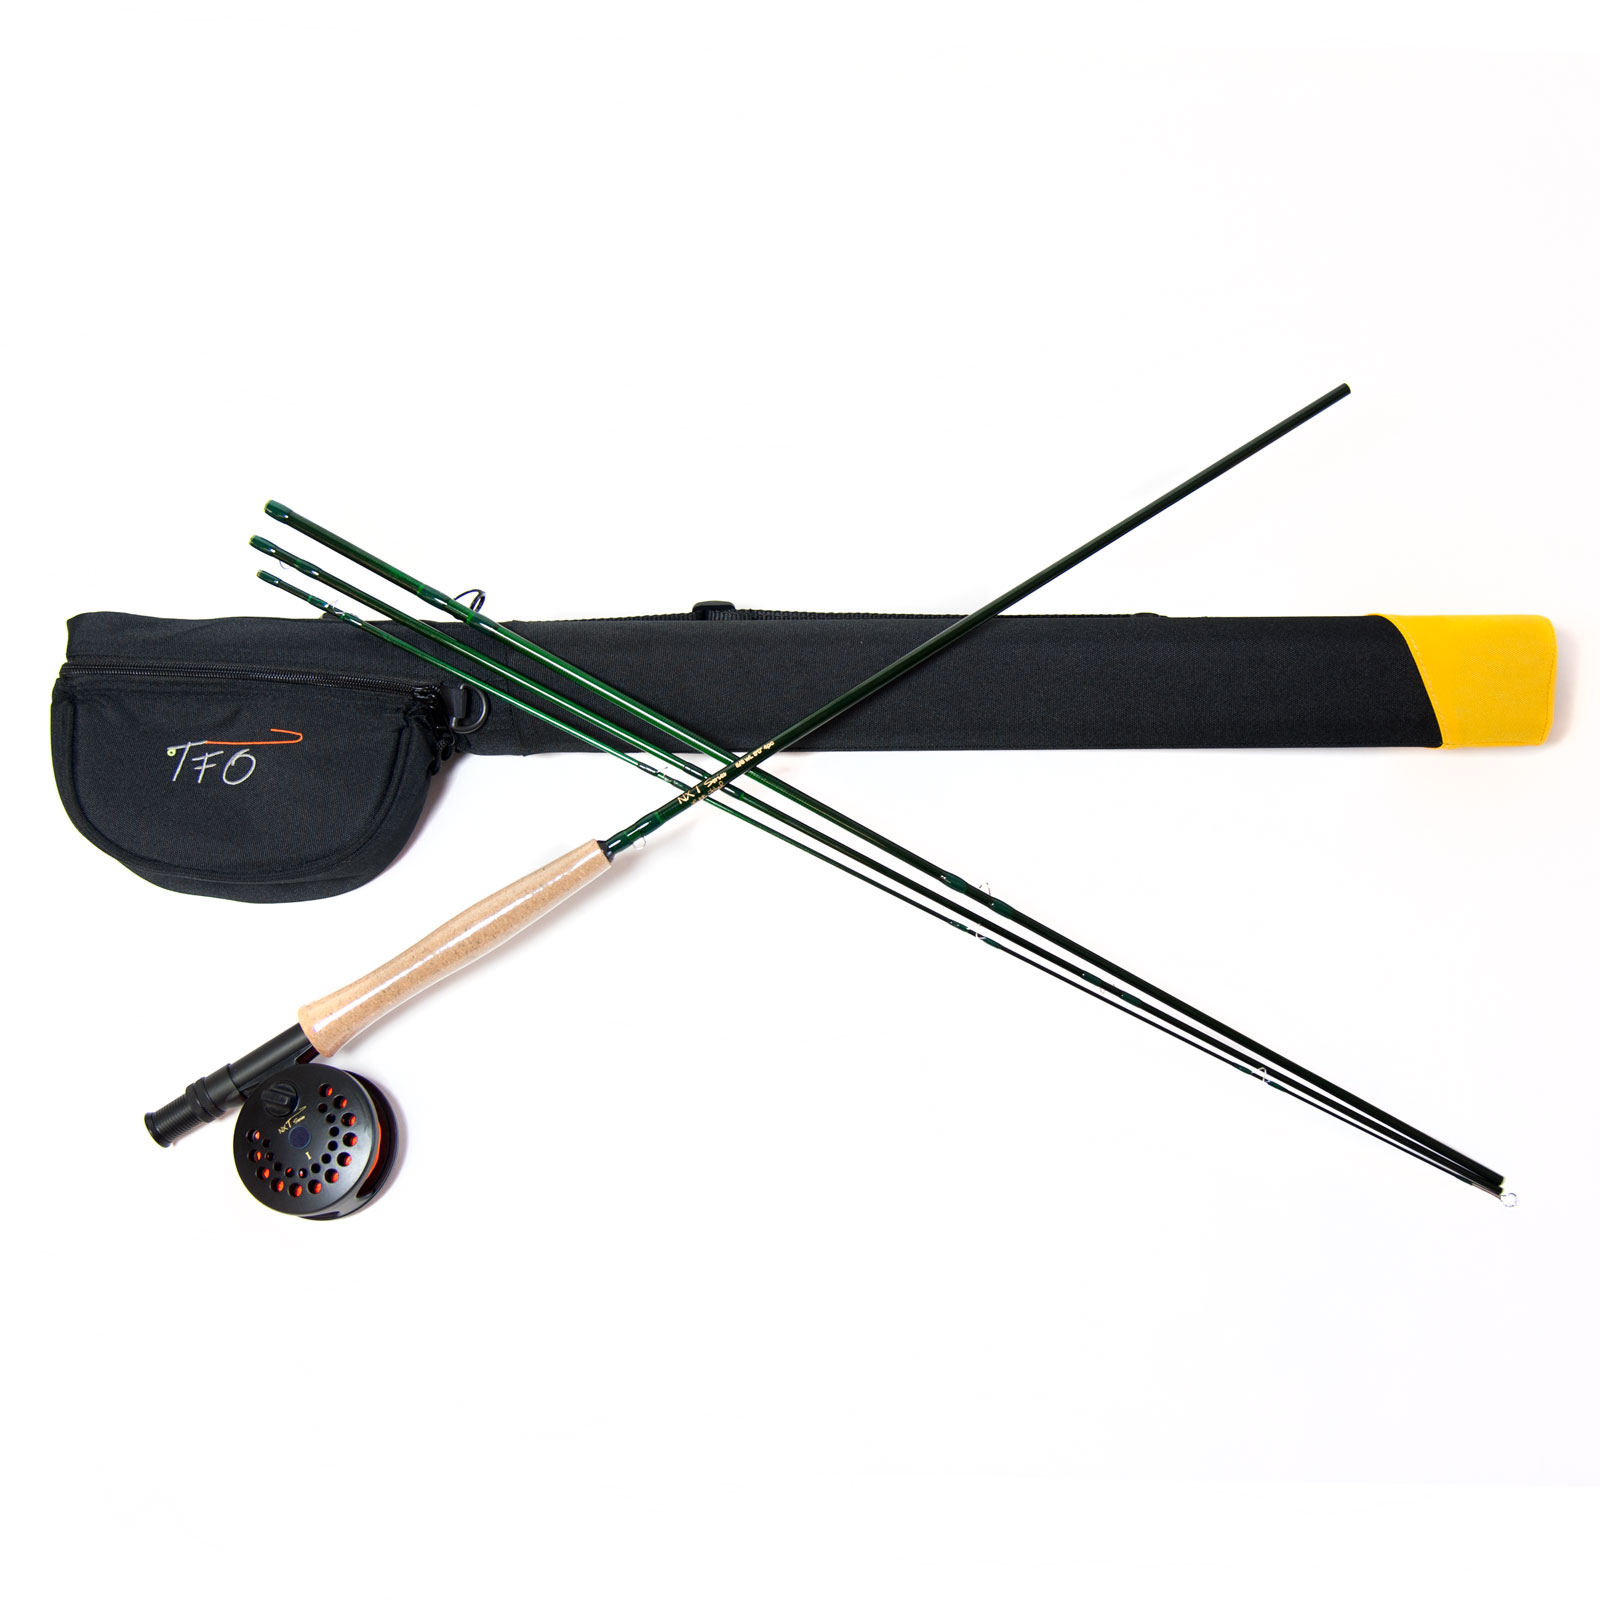 Tfo nxt fly fishing rod and reel outfit with case limited for Fishing rod and reel case